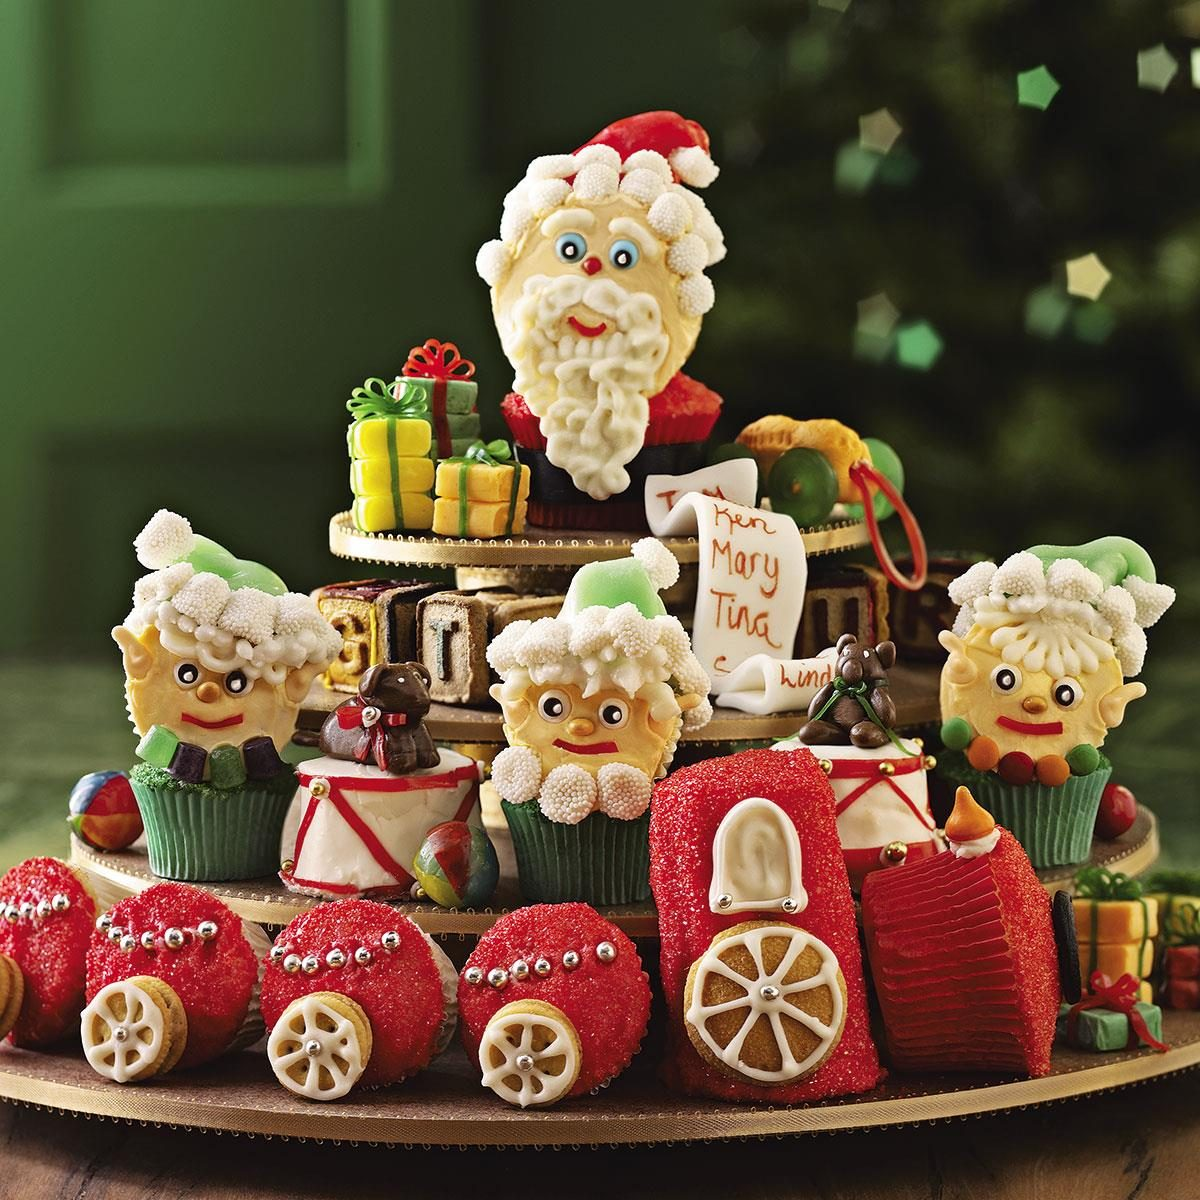 Santa's Workshop Cupcakes